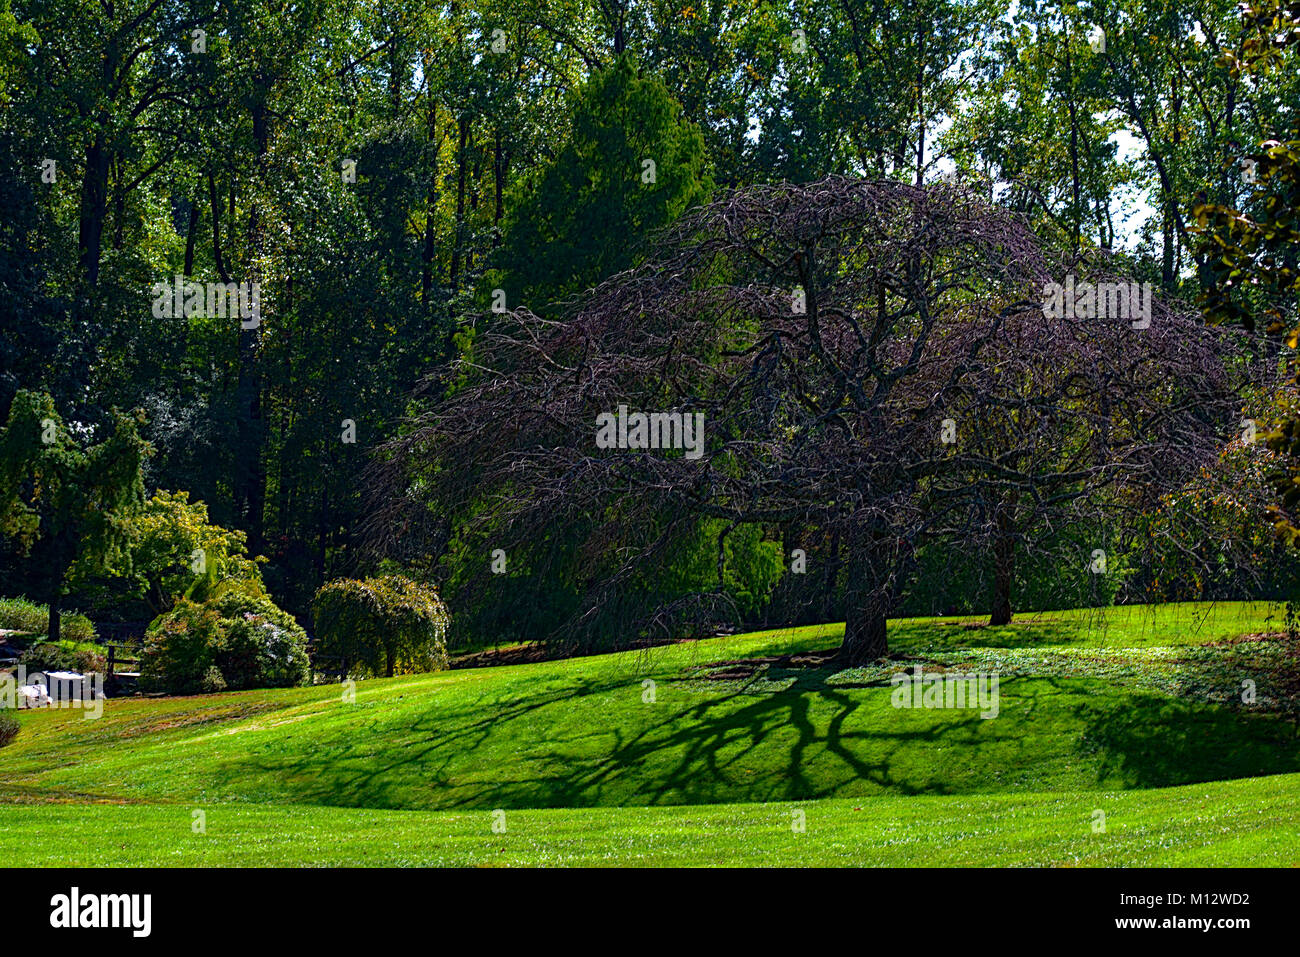 Lush green Tree Landscape - Stock Image